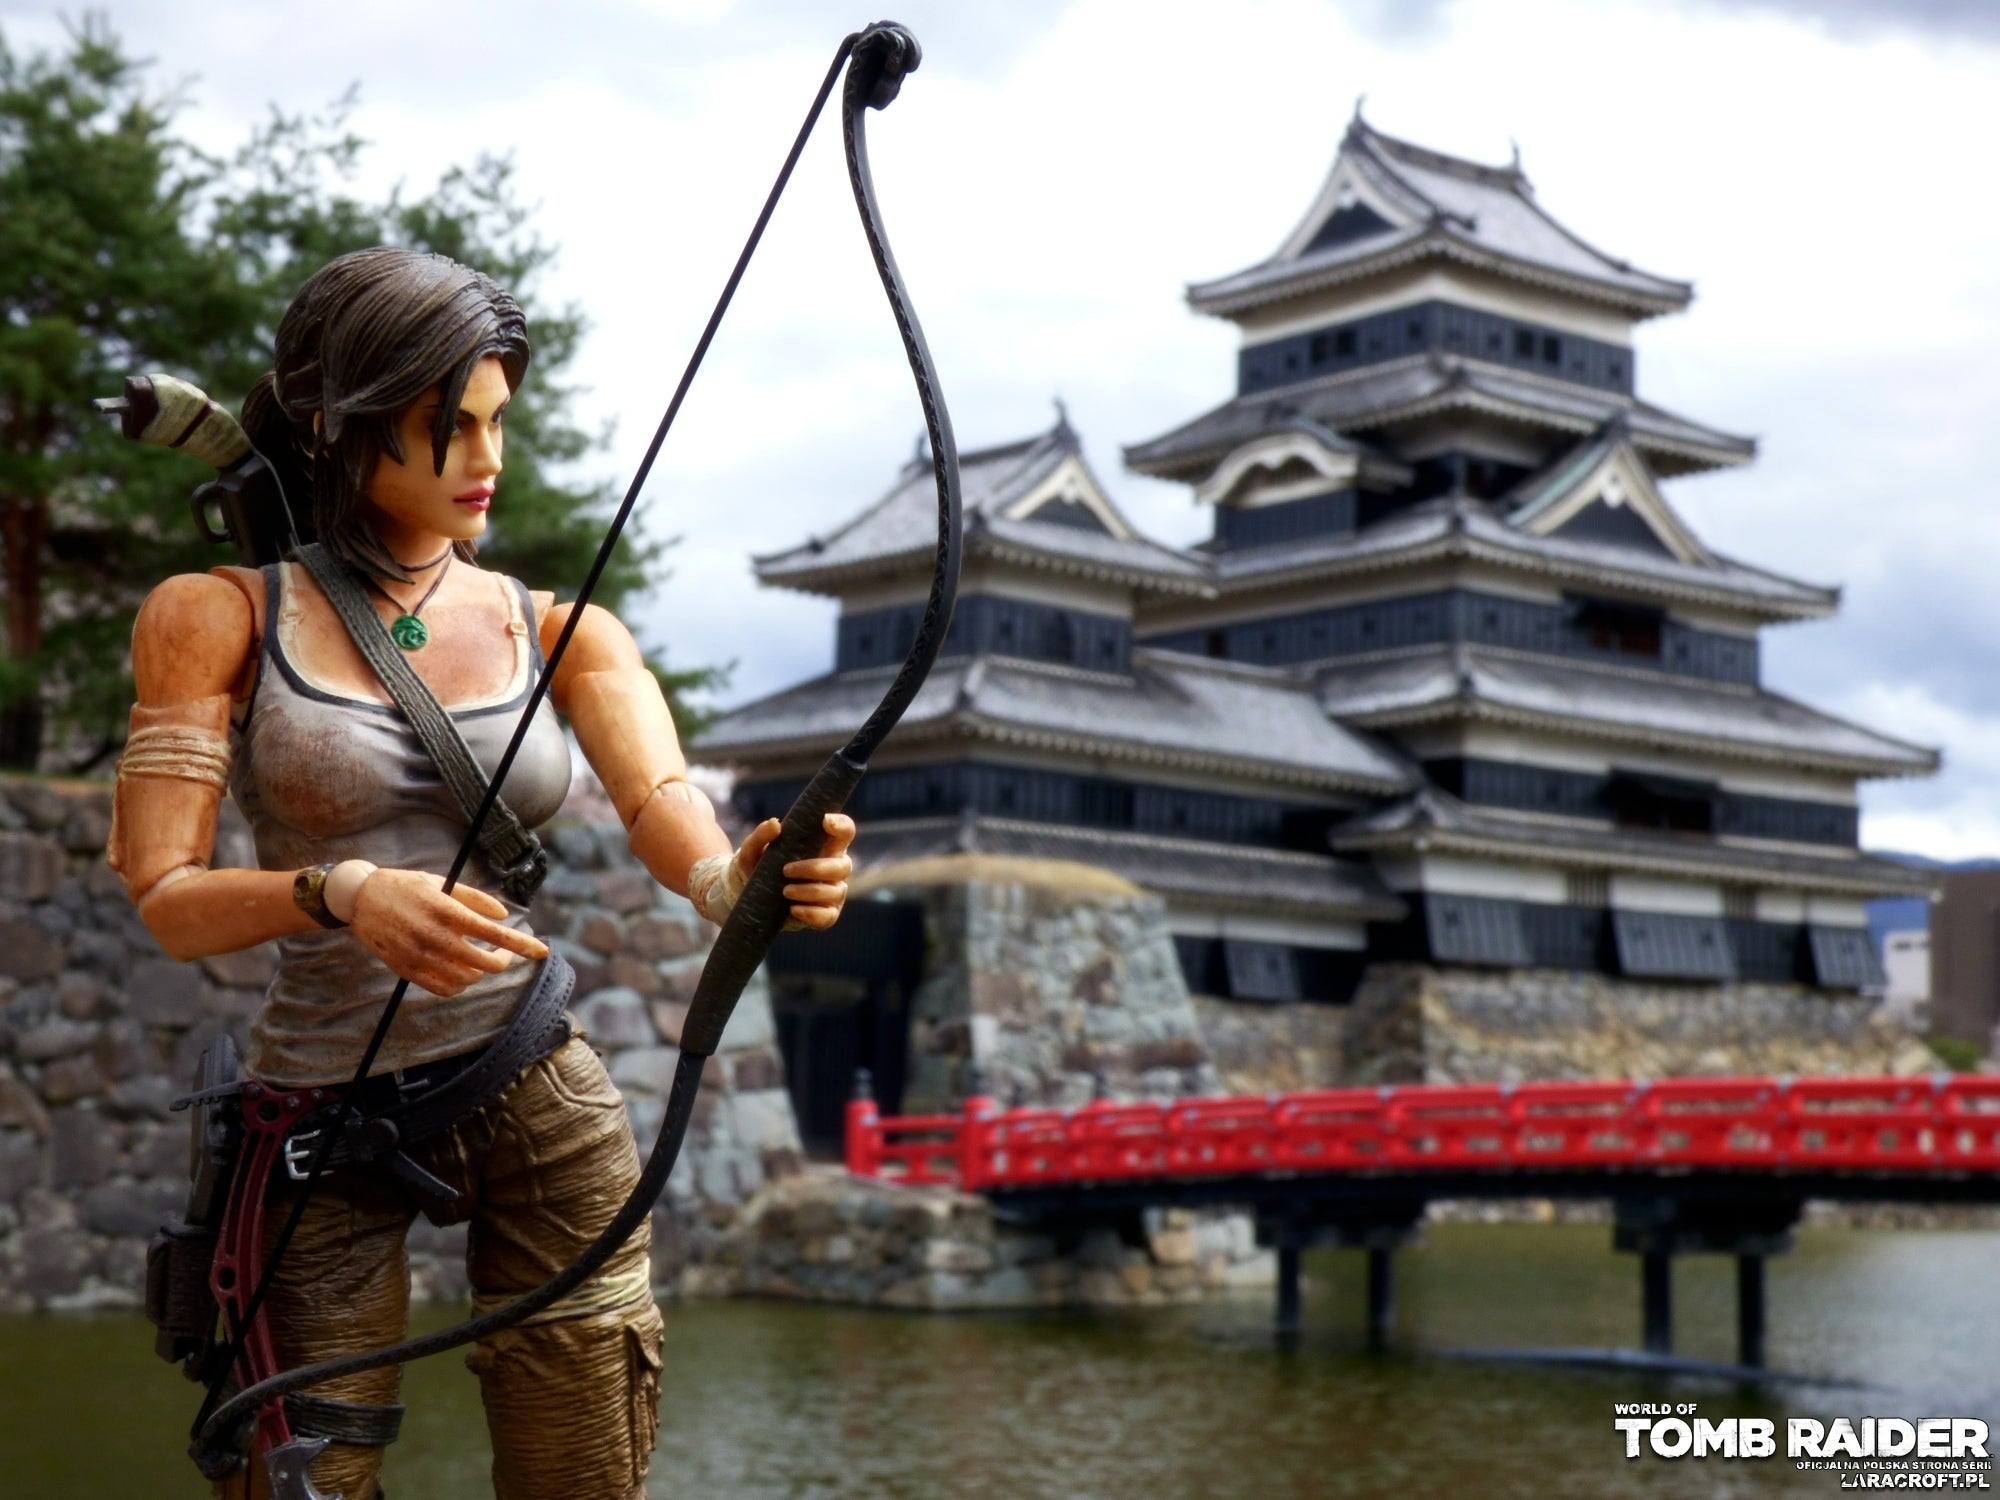 A photograph of a TR2013 Lara Croft figure in front of a temple in Japan